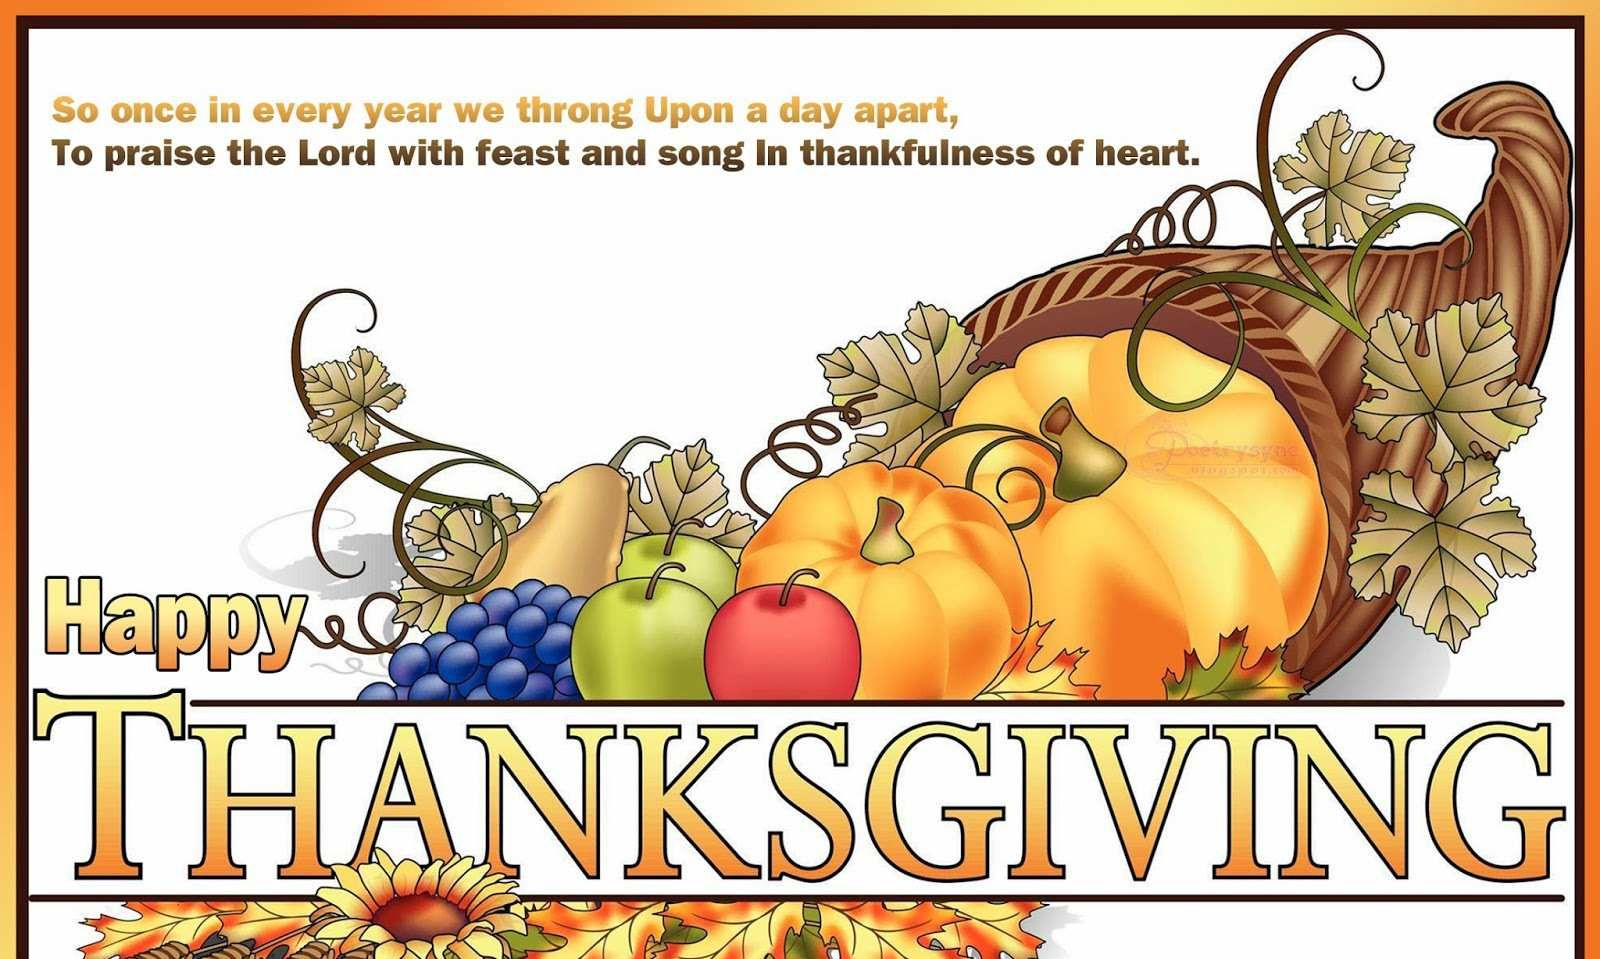 Get best latest thanksgiving wishes from business for your get best latest thanksgiving wishes from business for your friends and family top 10 kristyandbryce Gallery